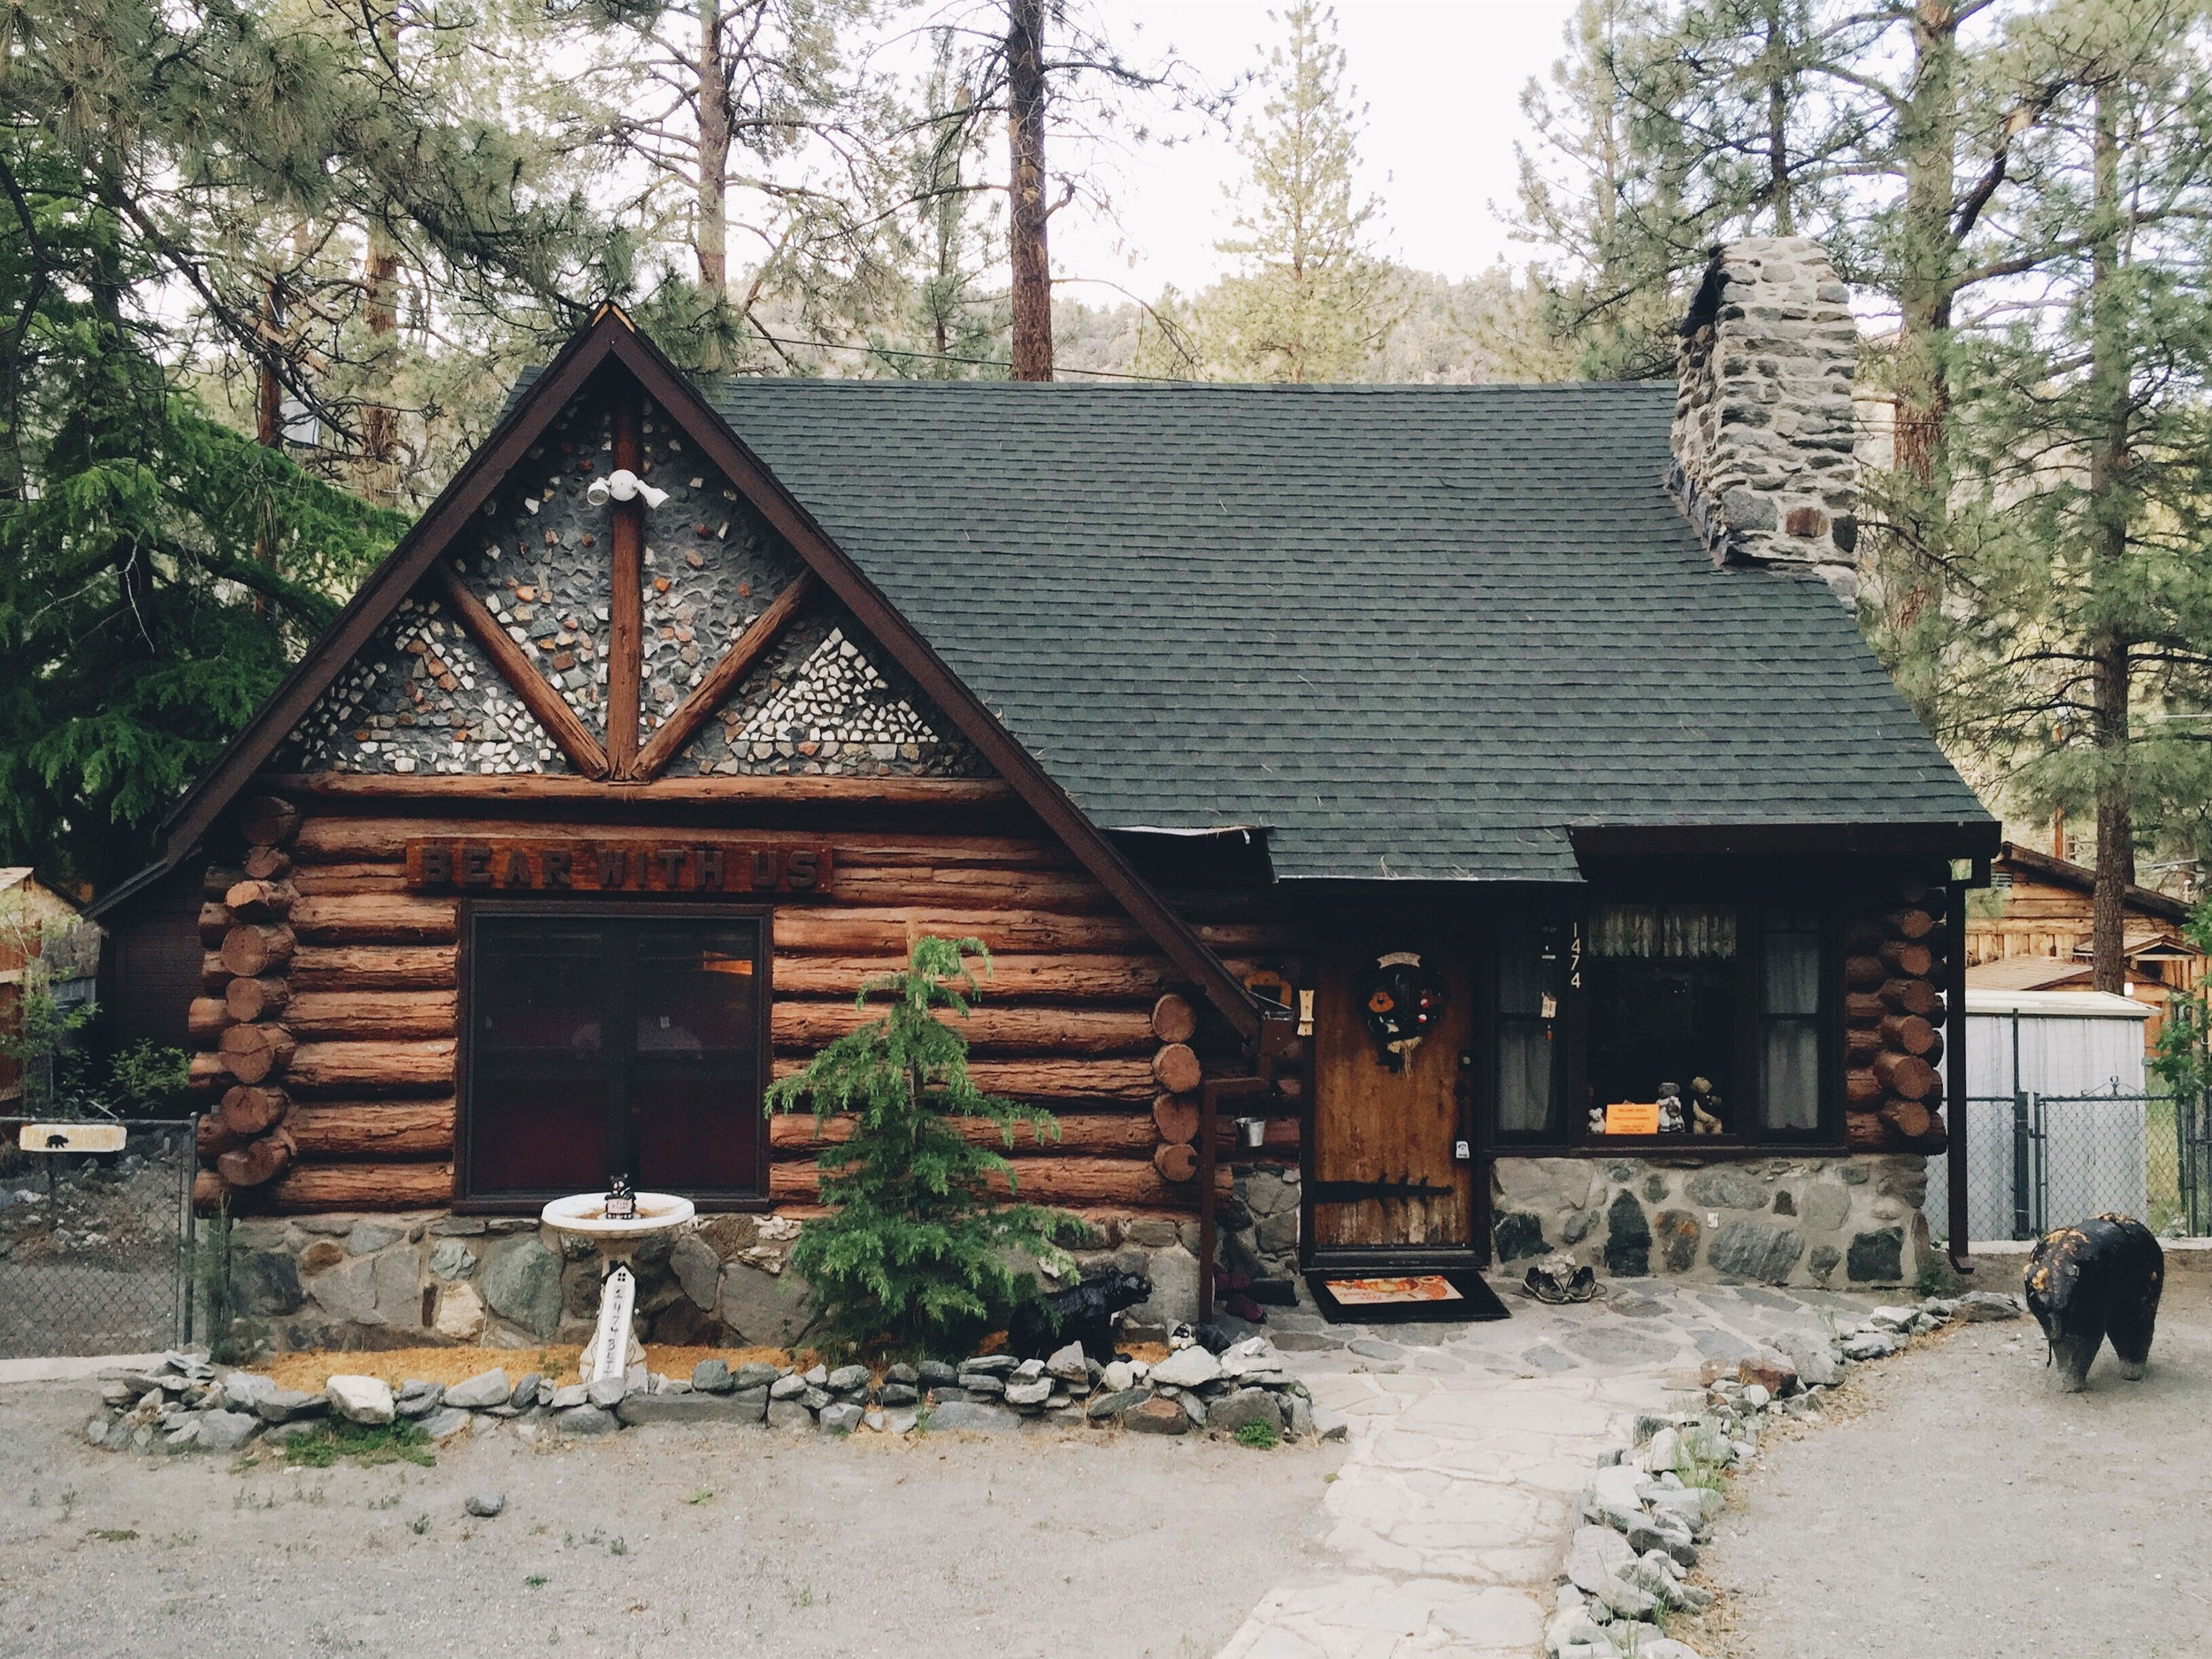 Our cute little cabin in Wrightwood.